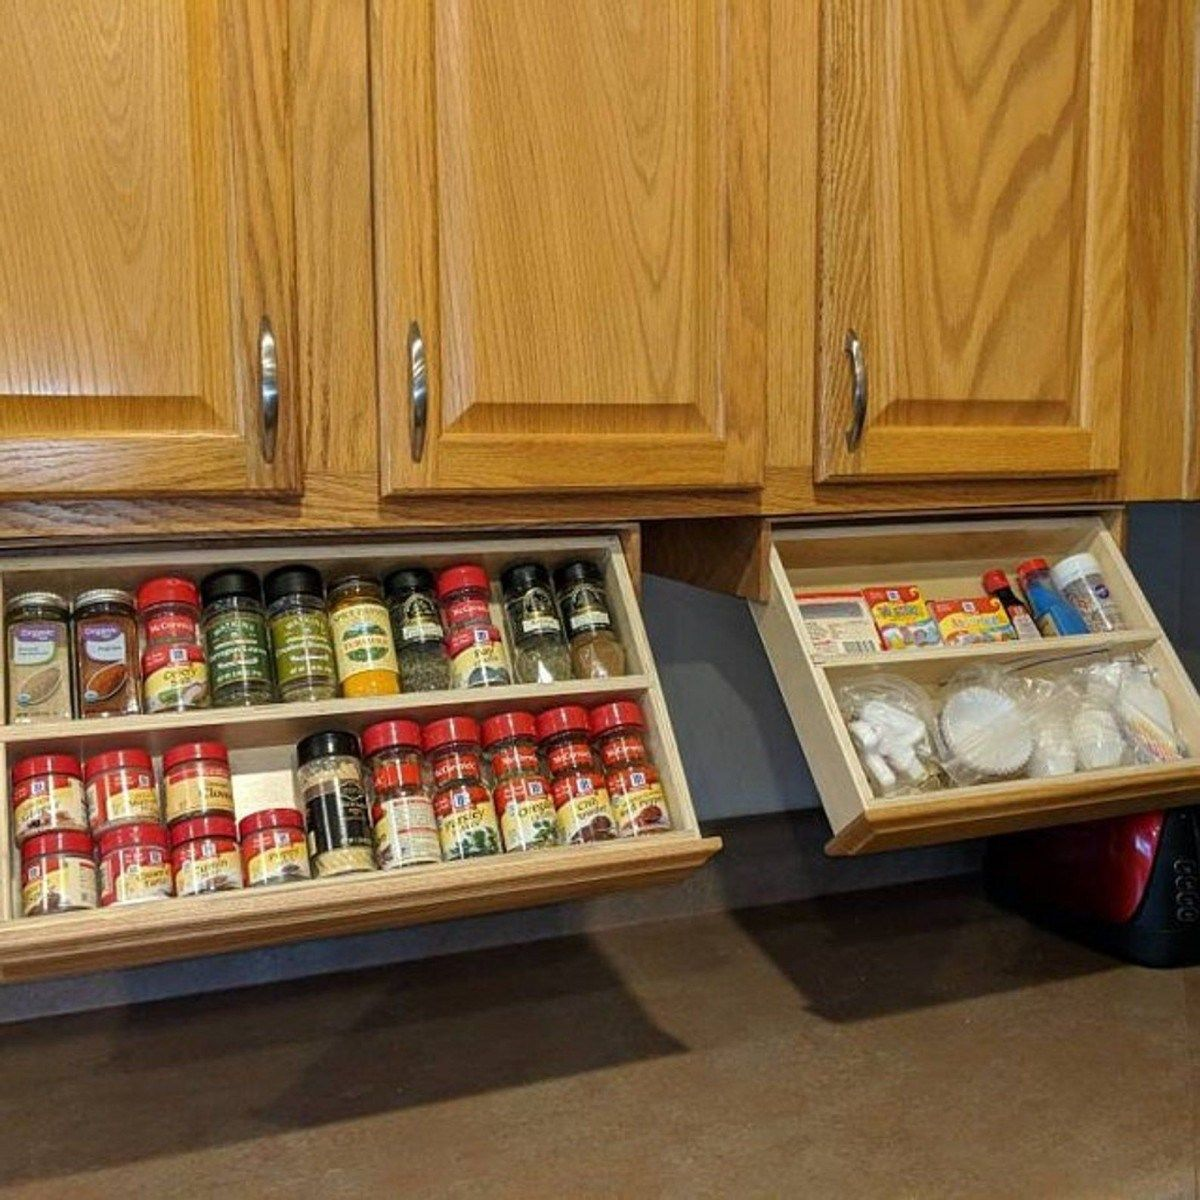 Kitchen Cabinet Organizers Corner And Pull Out Organizer Ideas In 2020 Cabinet Spice Rack New Kitchen Cabinets Kitchen Organization